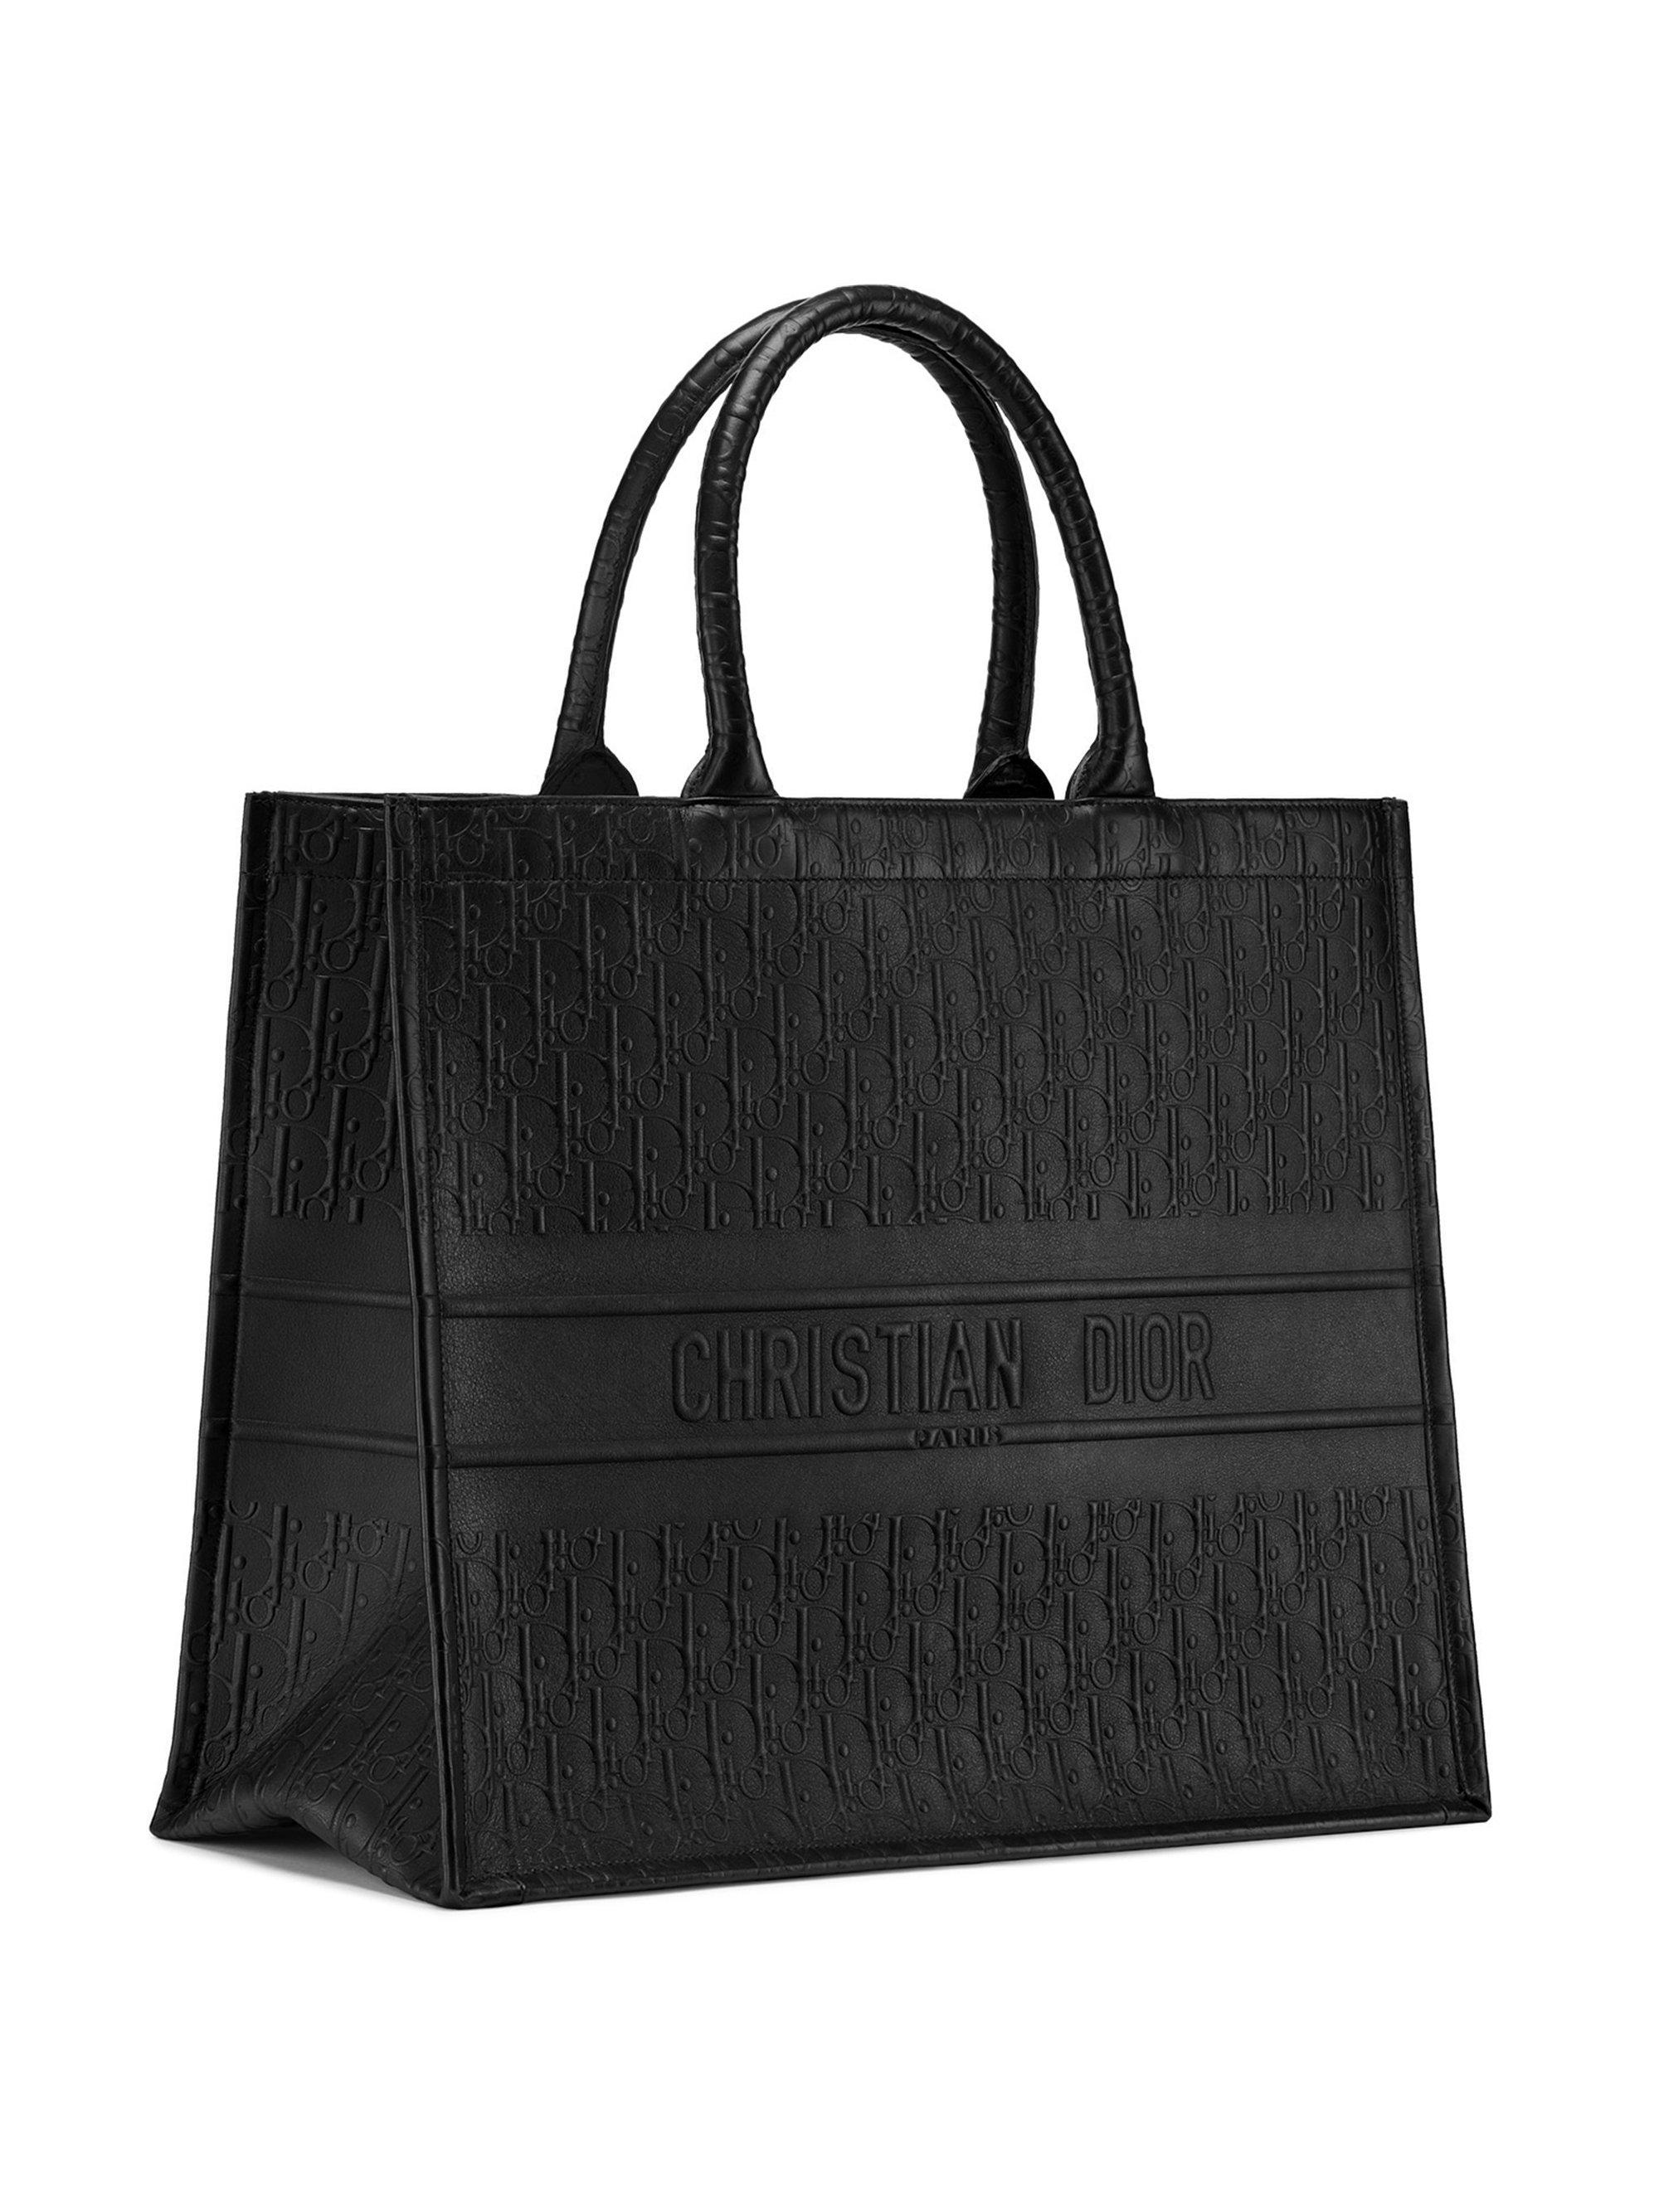 Lyst - Dior Oblique Embossed Leather Book Tote in Black 6c2febb819660